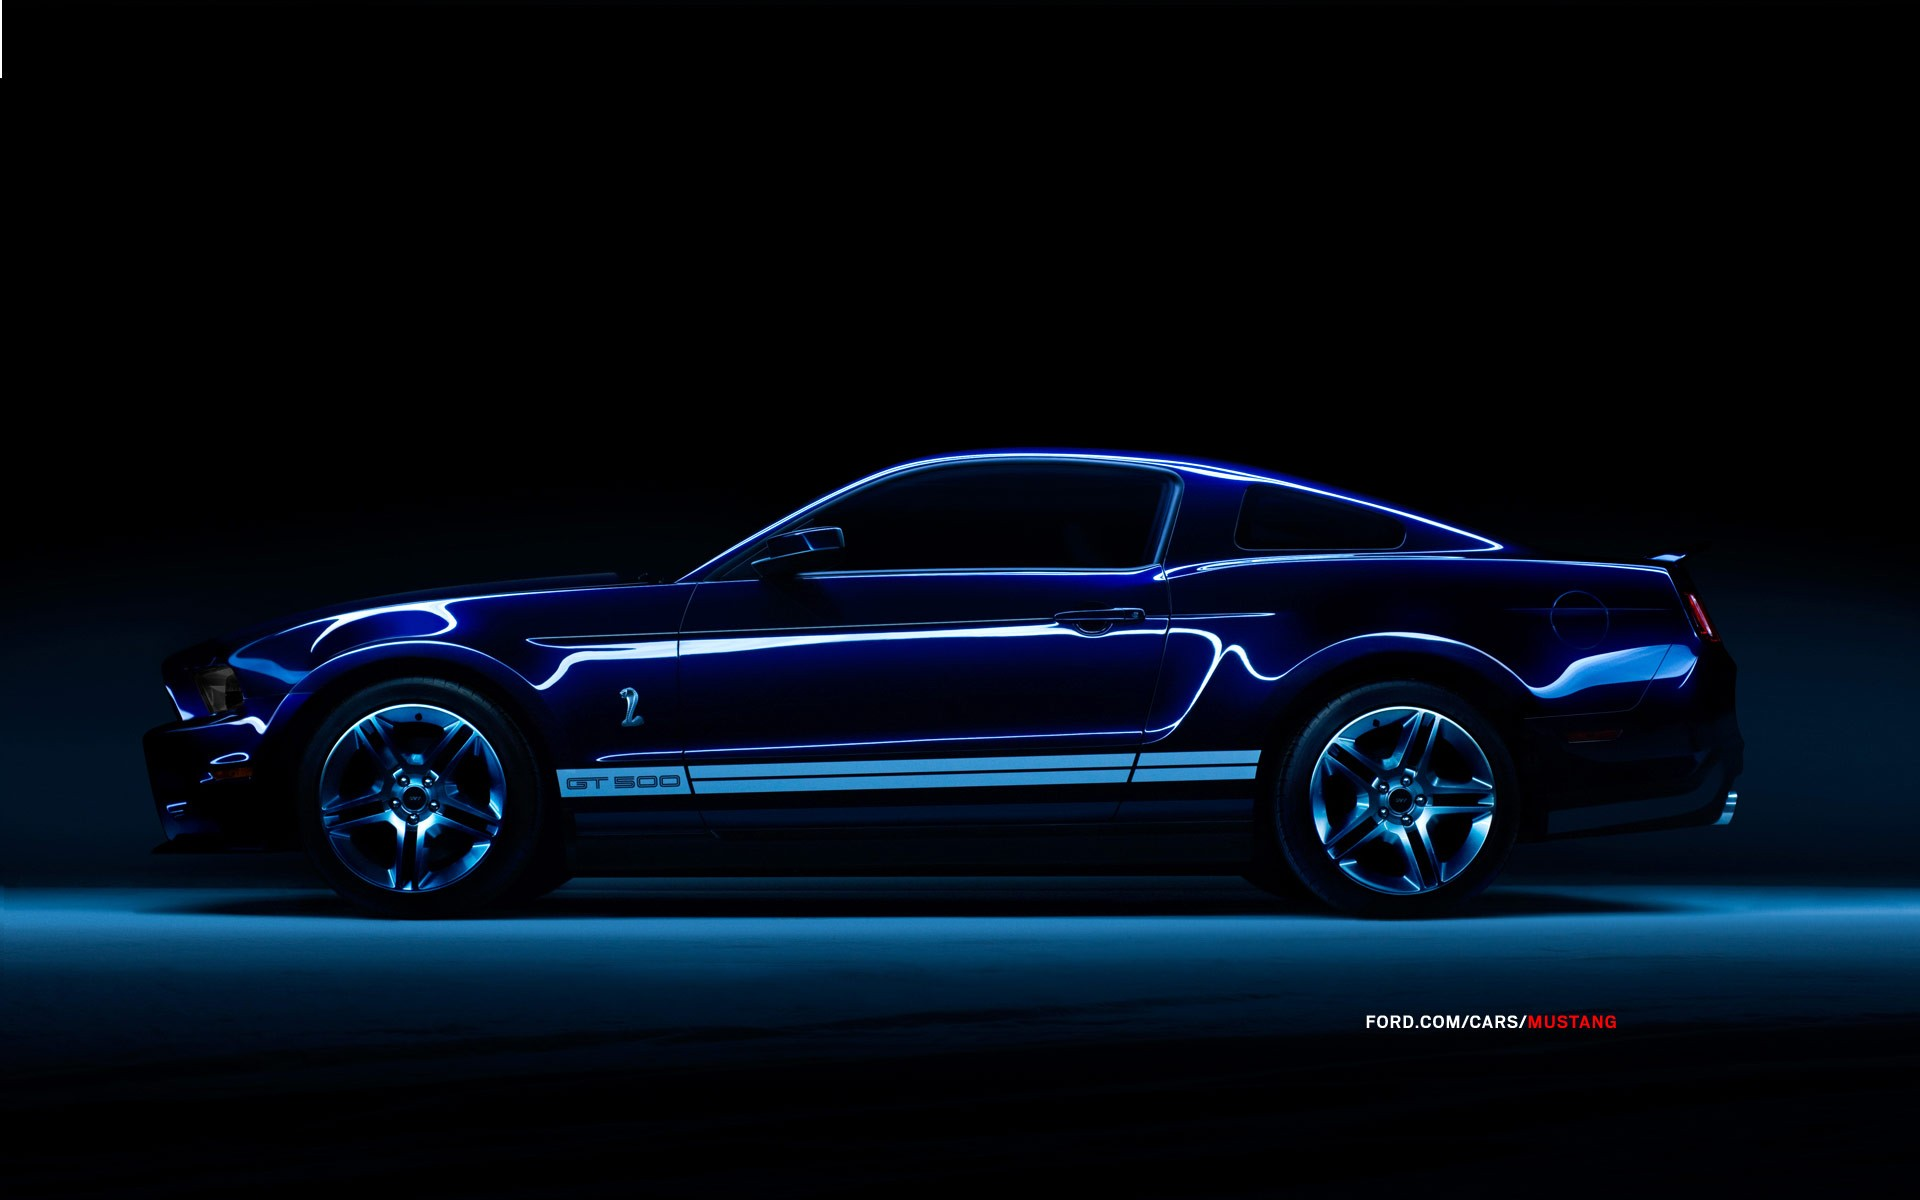 Ford Mustang Shelby GT500 Computer Wallpapers Desktop Backgrounds 1920x1200